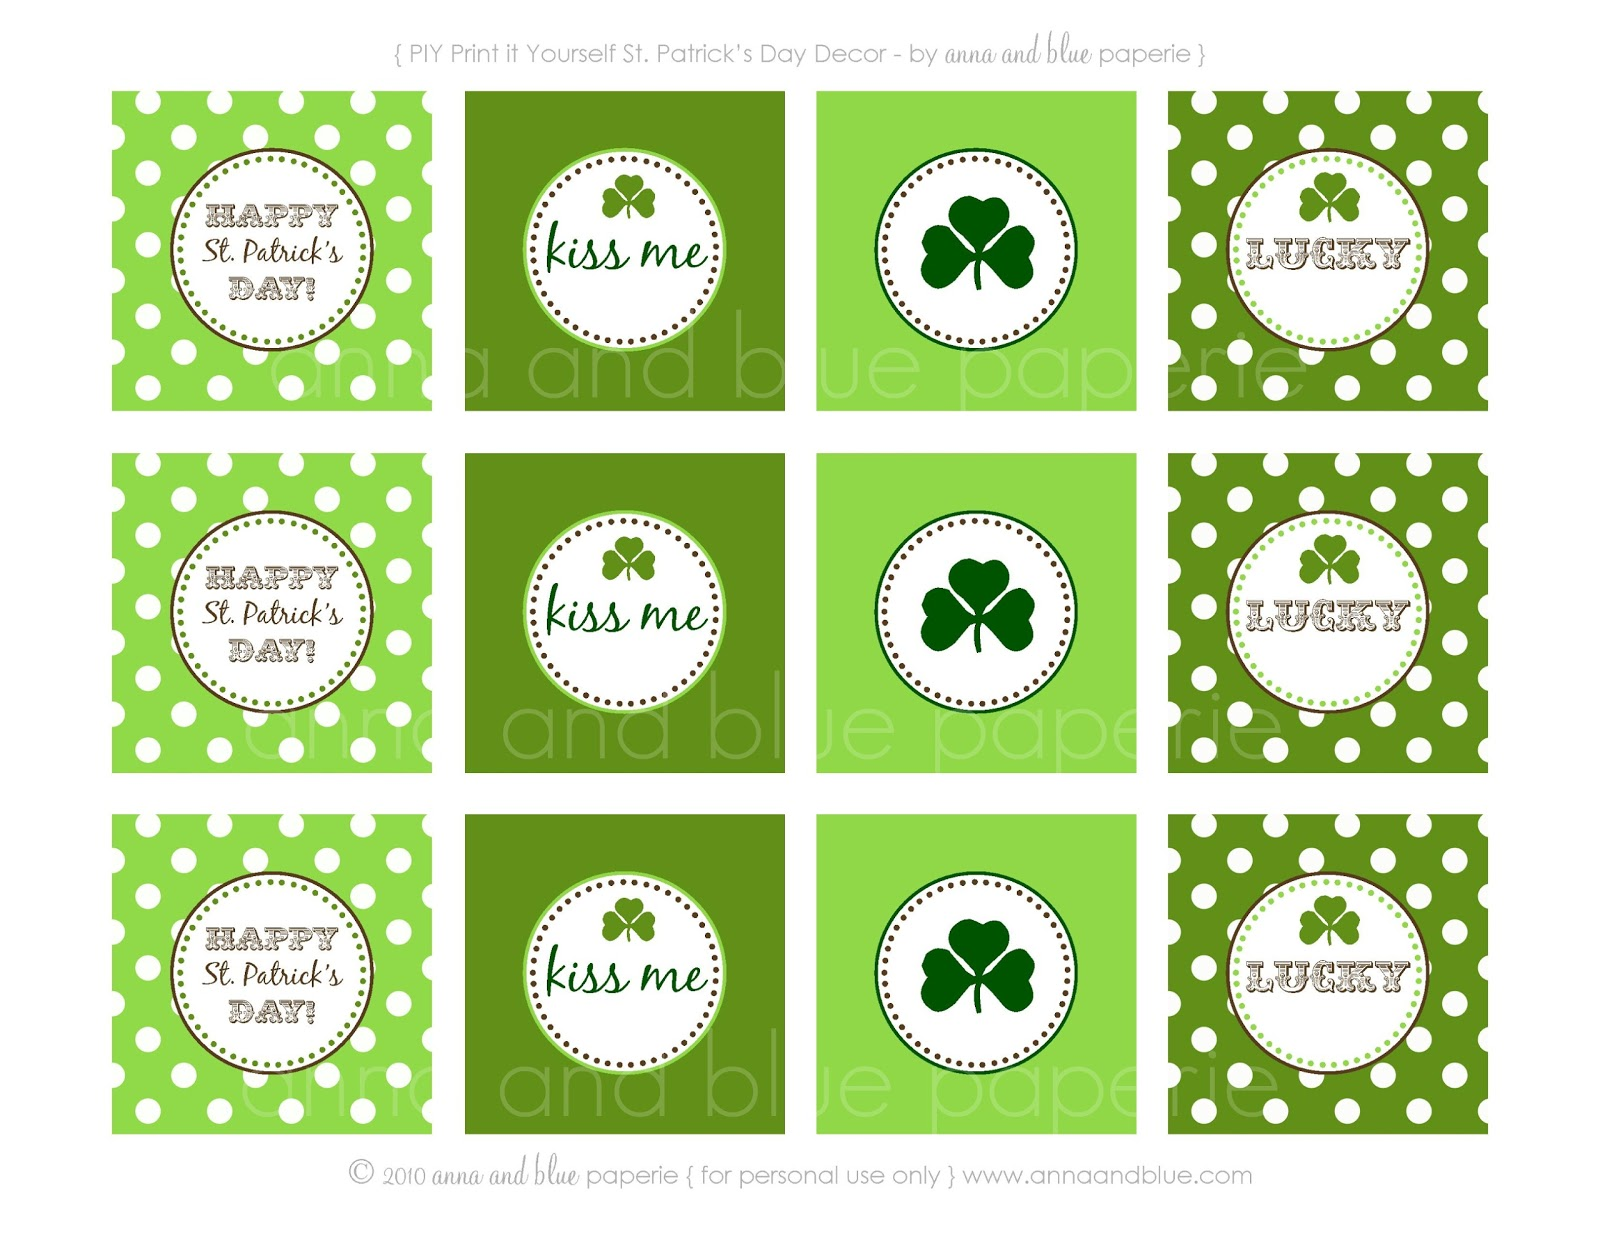 Free Printable St Patrick S Day Worksheets : Anna and blue paperie free printable happy st patrick